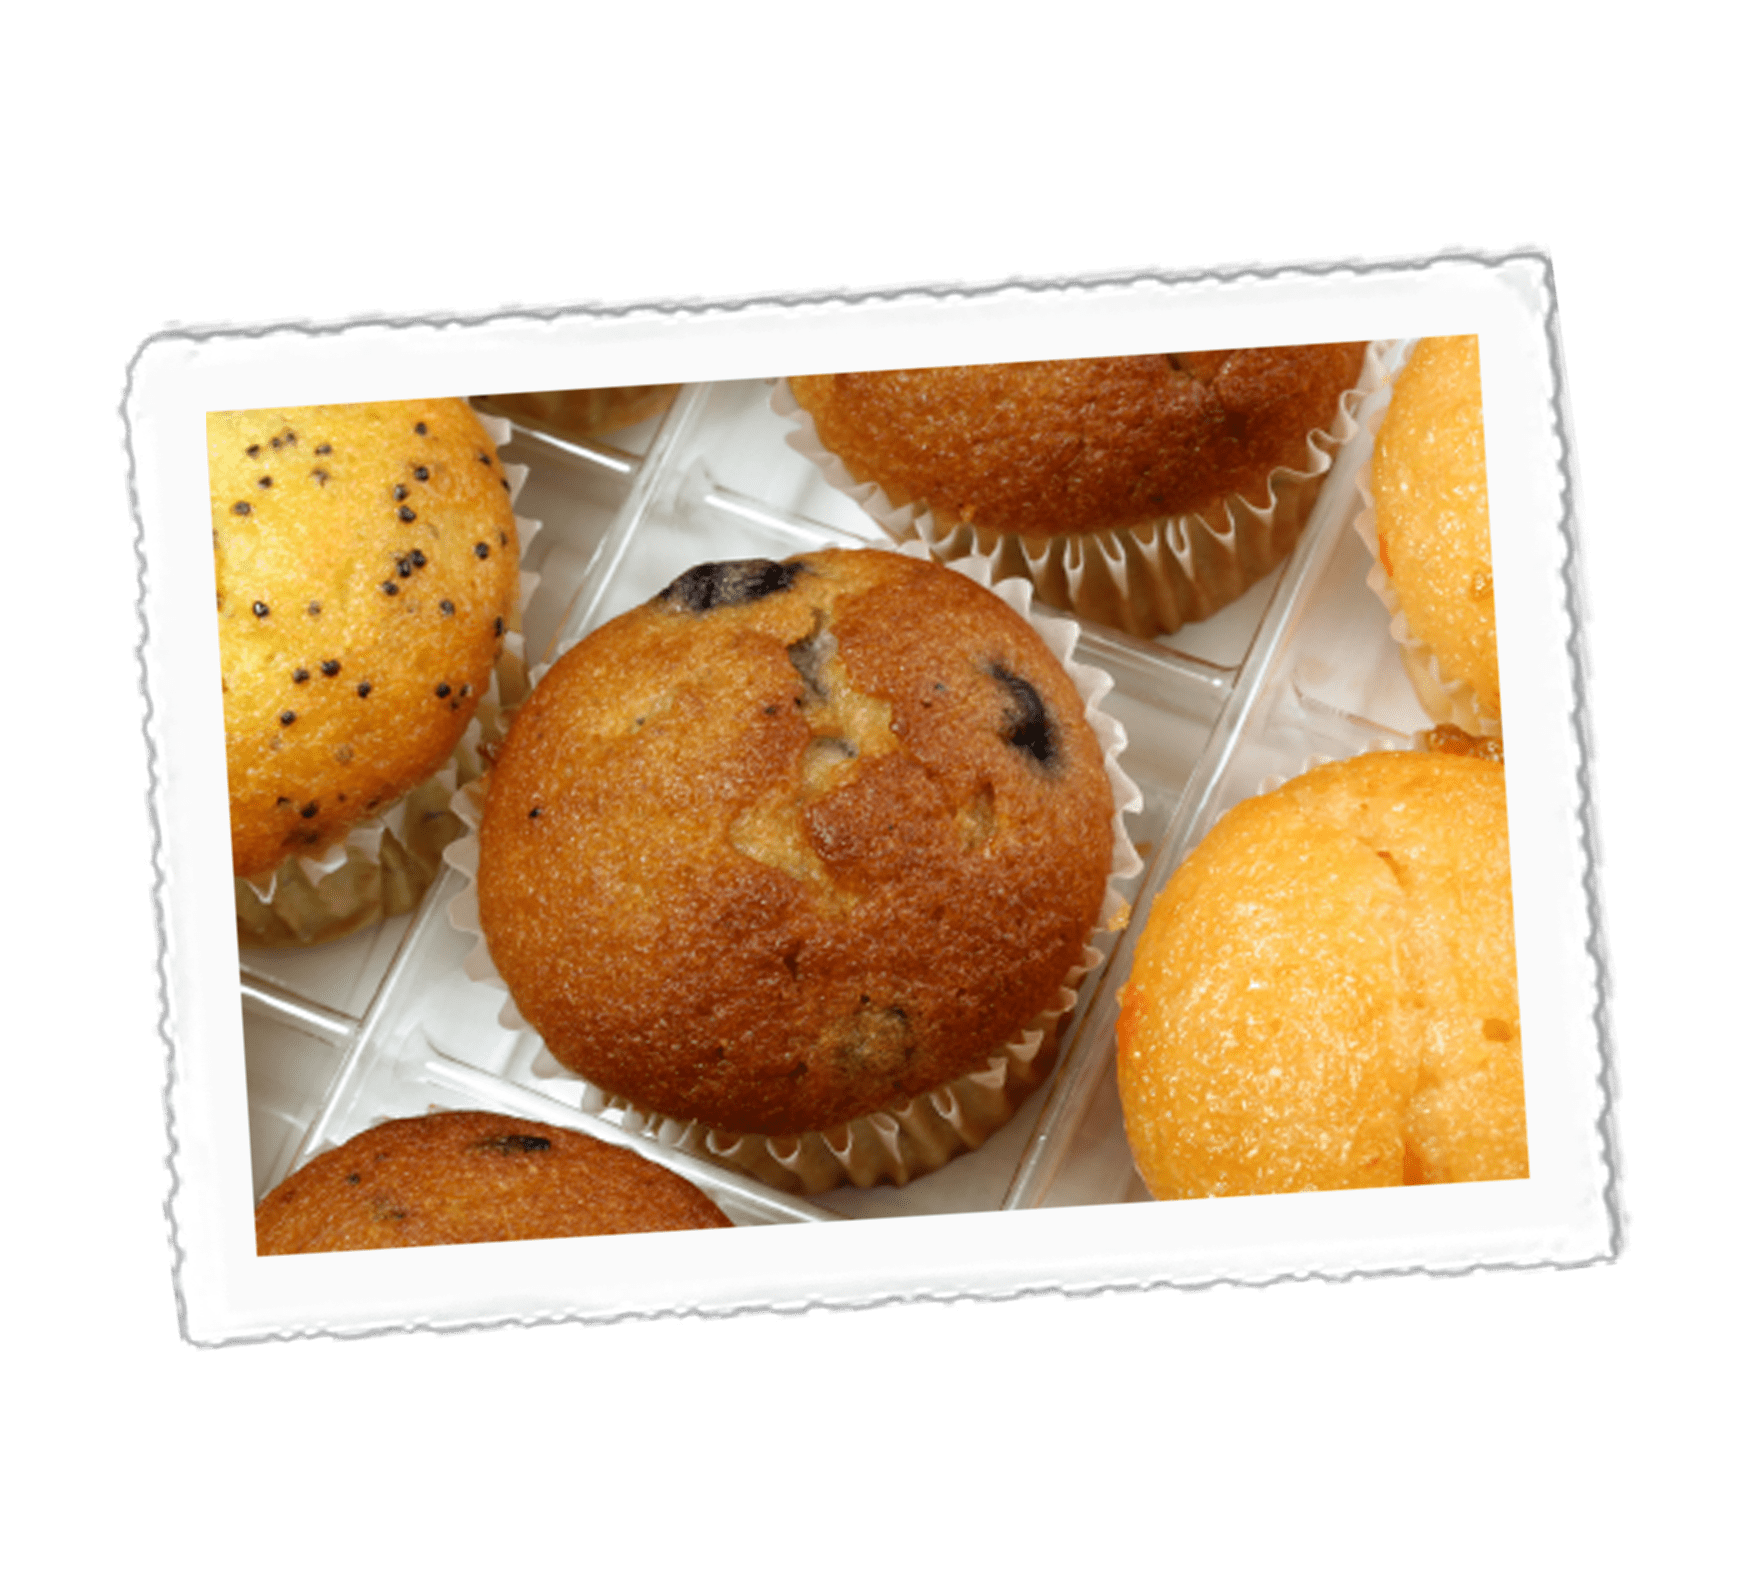 Crazy Jack's Magic Blueberry Muffins